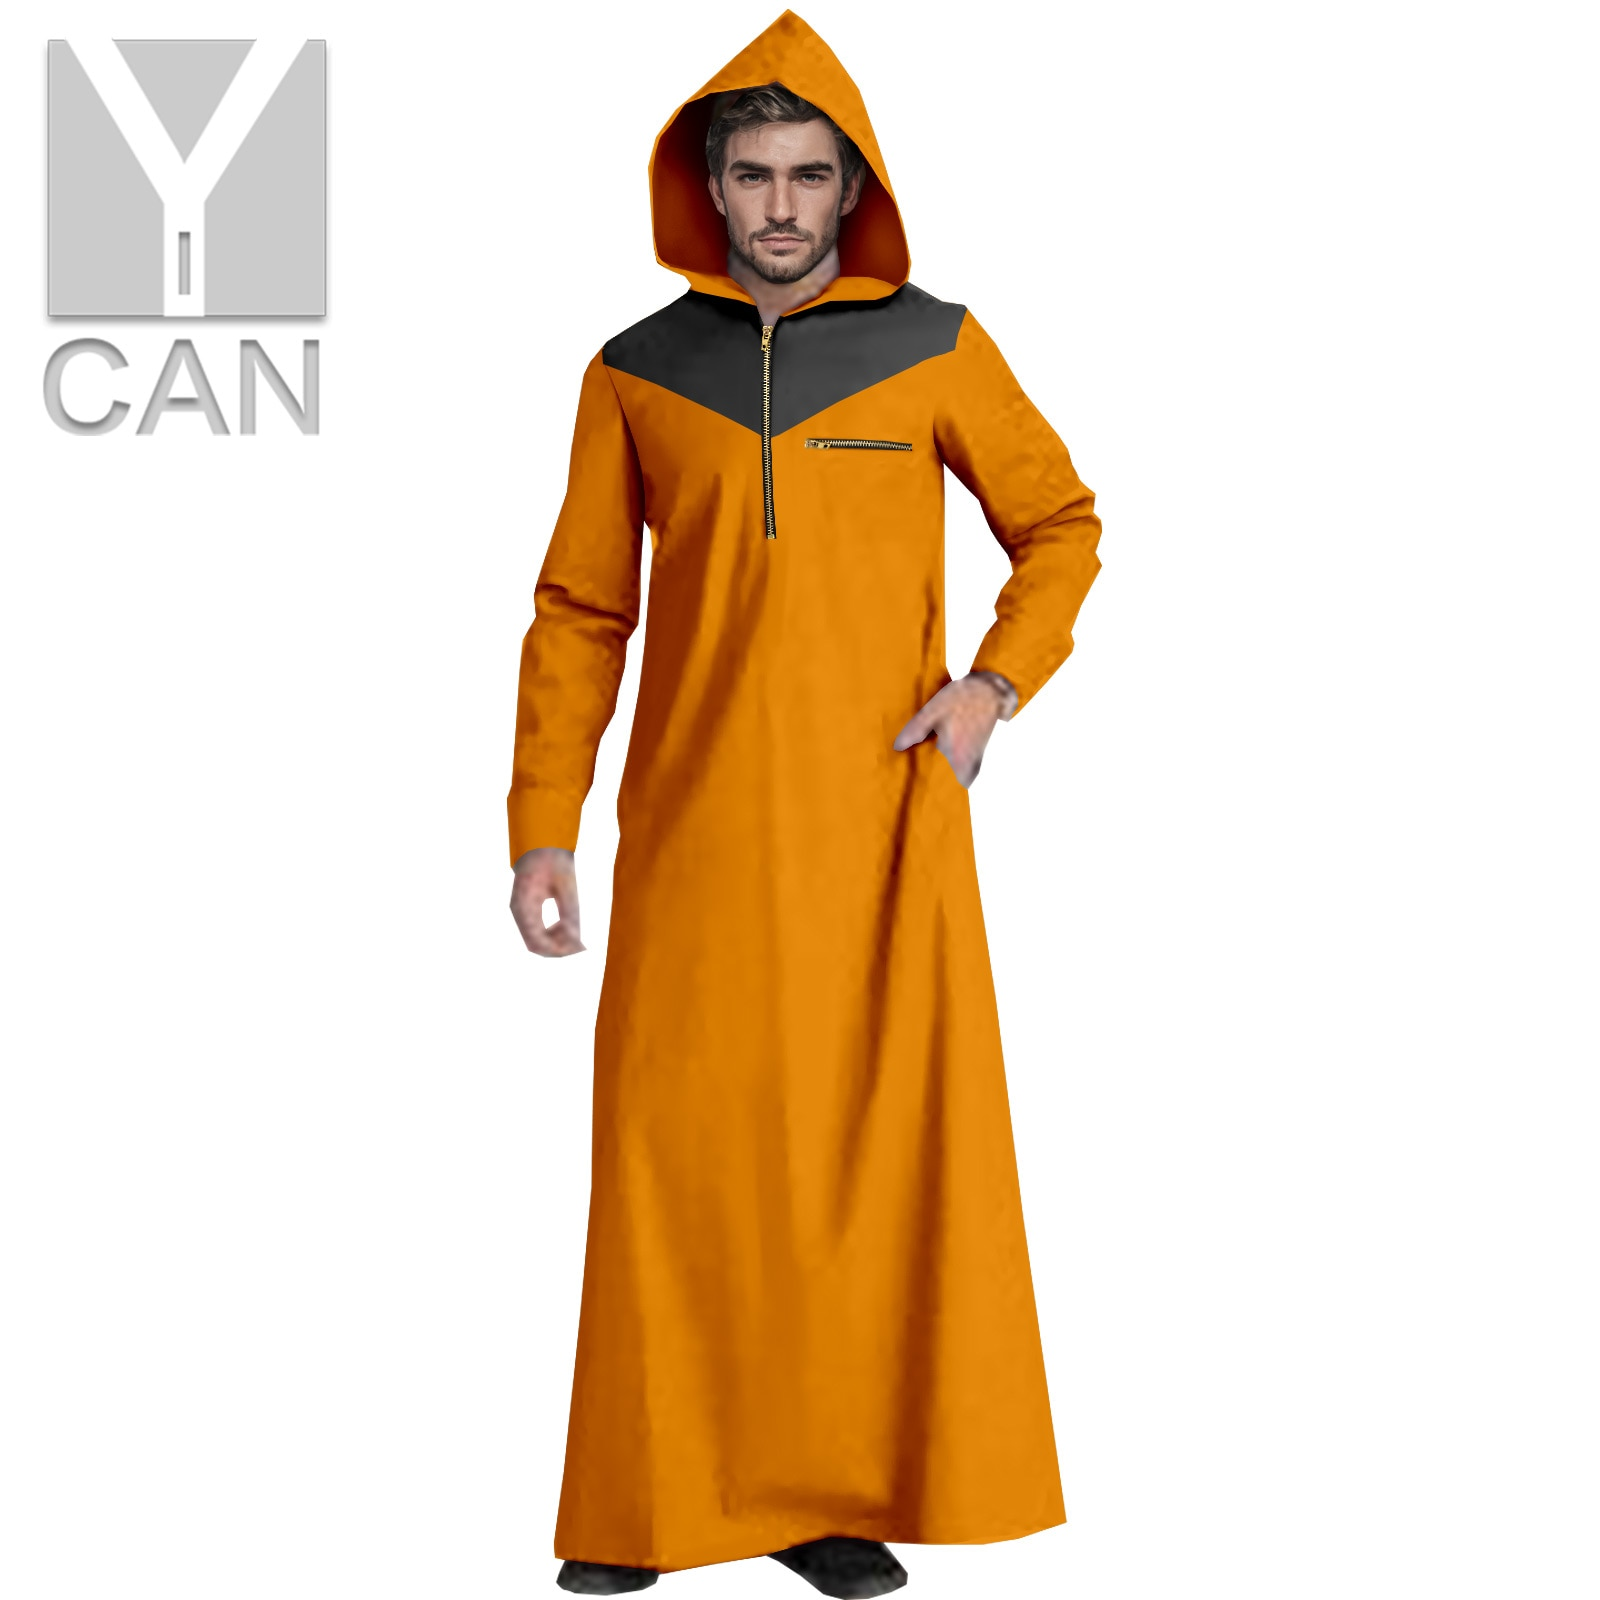 Y-CAN Men's Muslim Fashion Jubba Thobe With Long Sleeves Plus Size Islamic Hooded Clothing Muslim Texture Hemming Robe Y211002